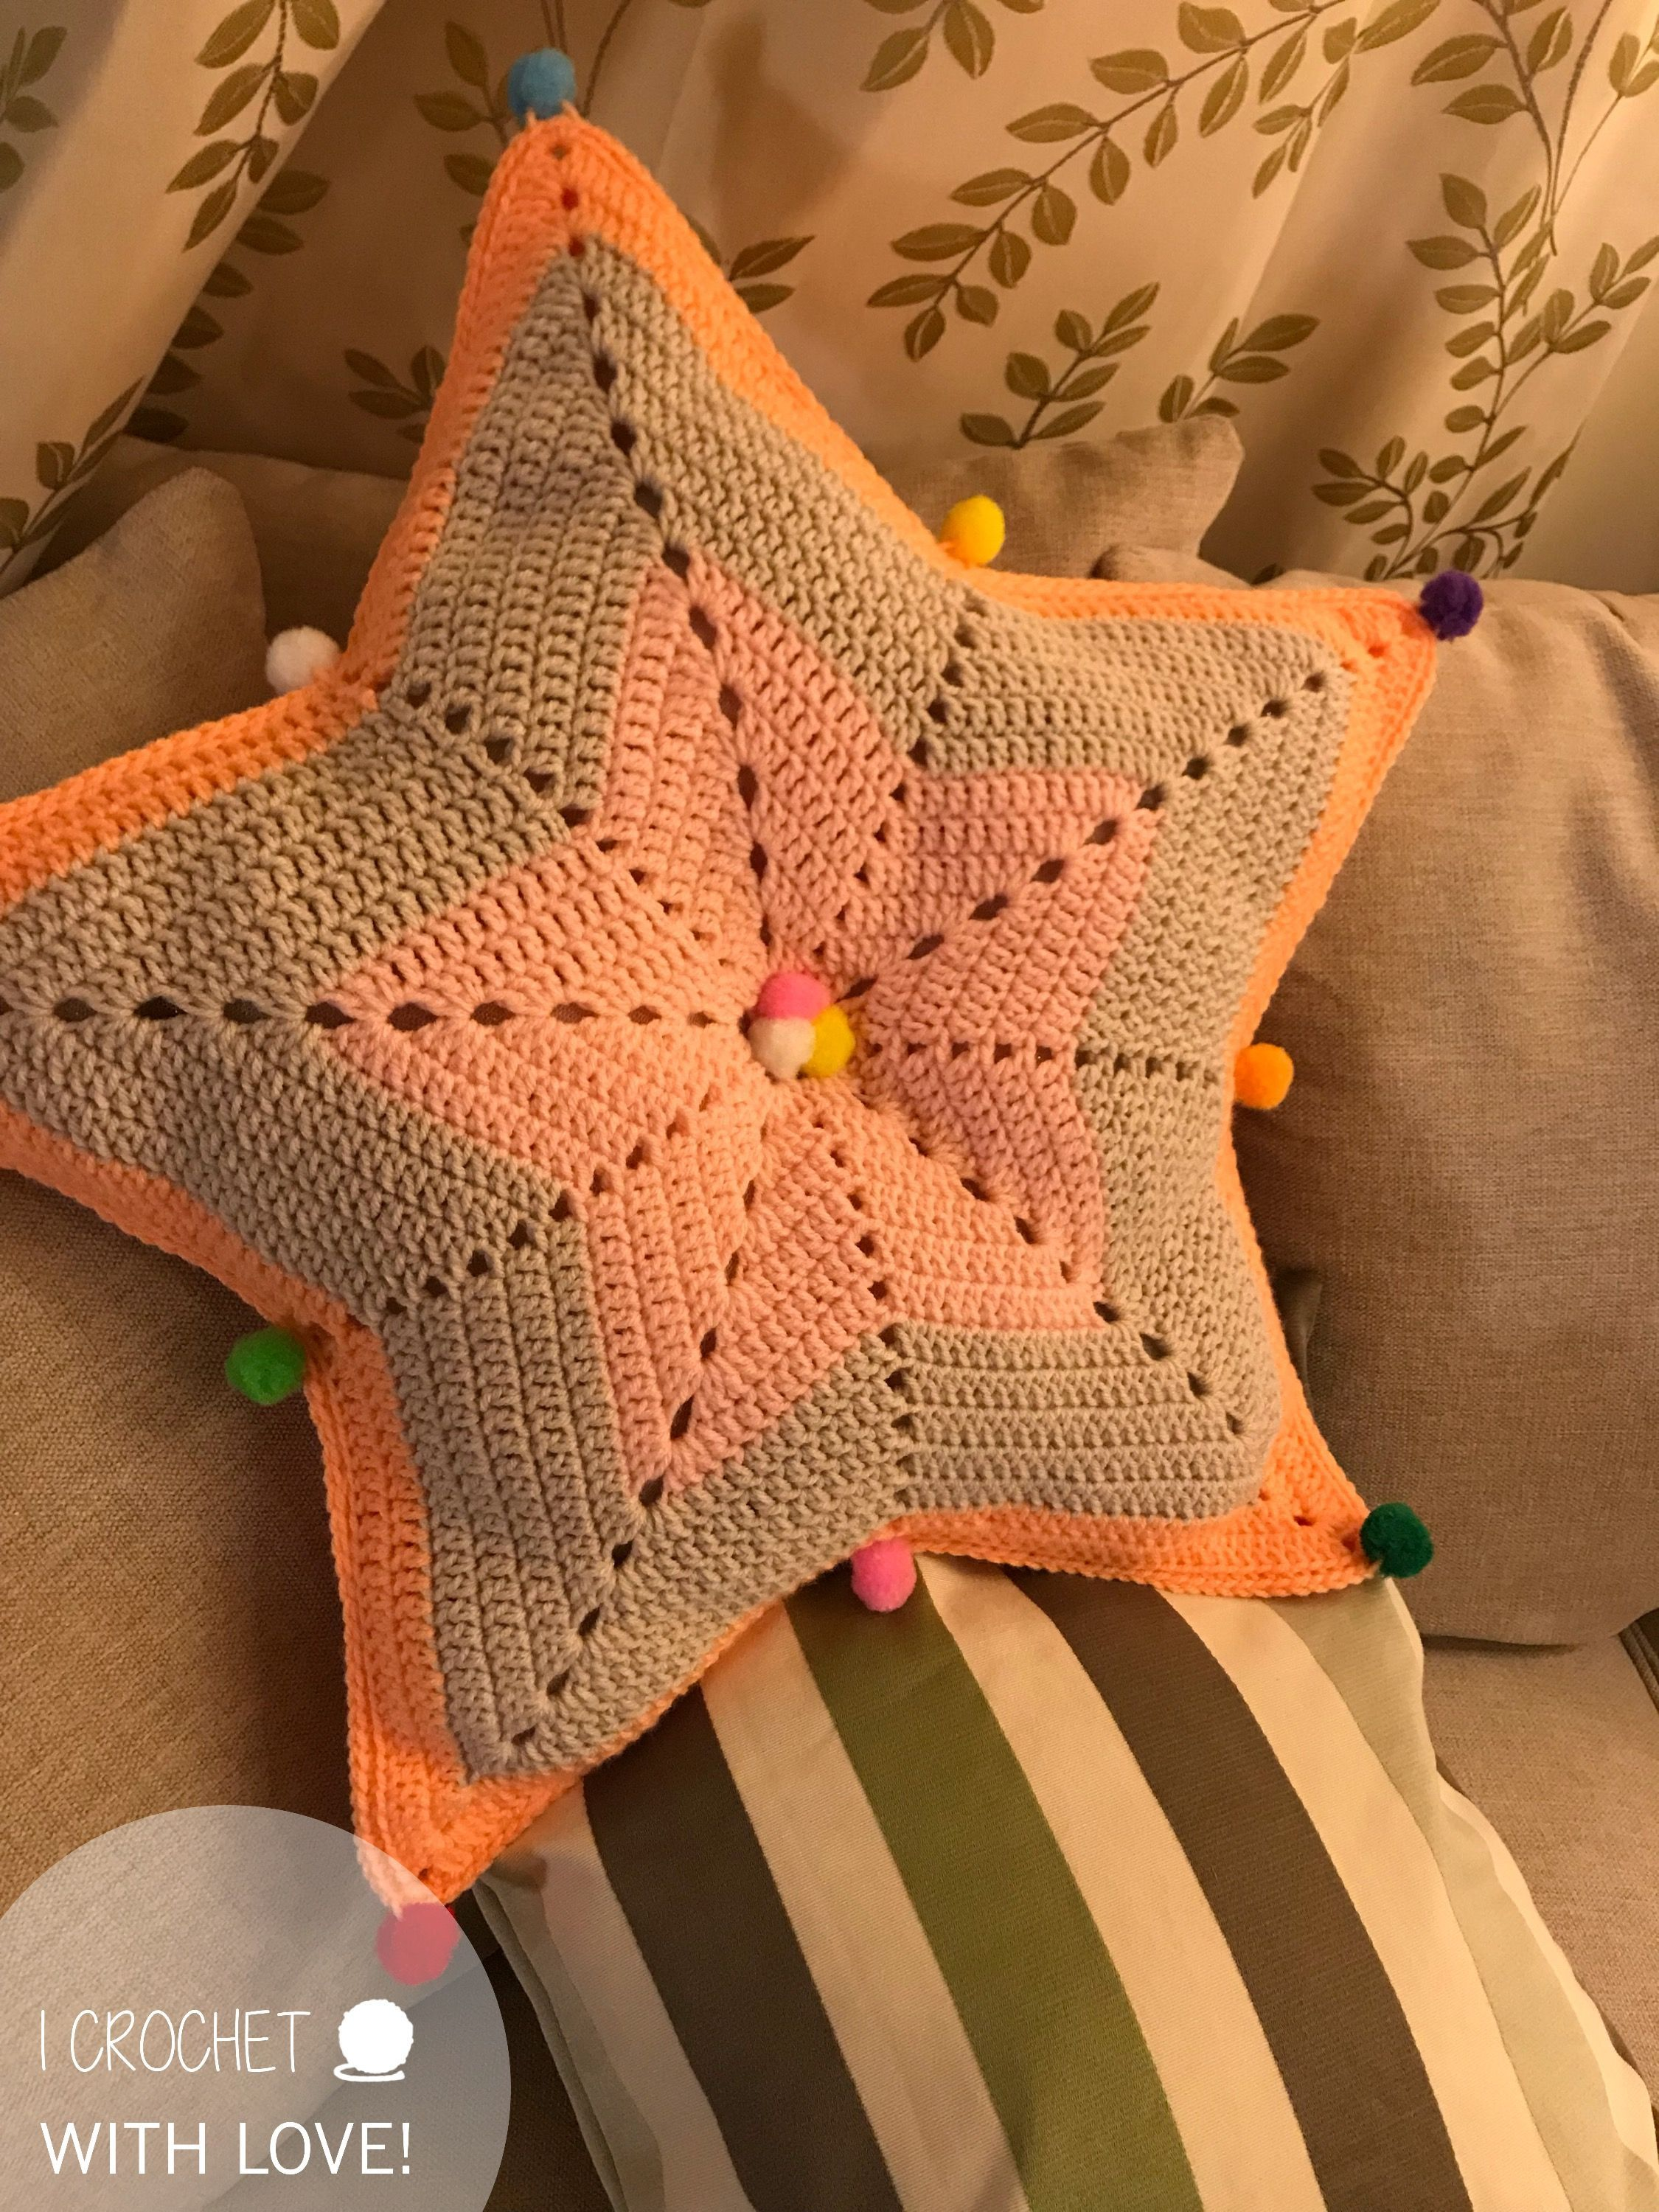 Star Pillow In 2020 Crochet Patterns Crochet Lovers Star Pillows